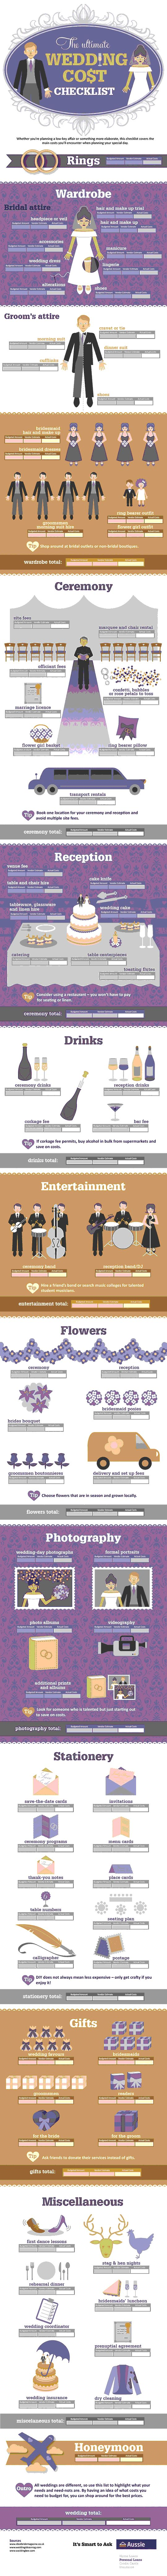 Checklist of Wedding Expenses and Wedding To Dos